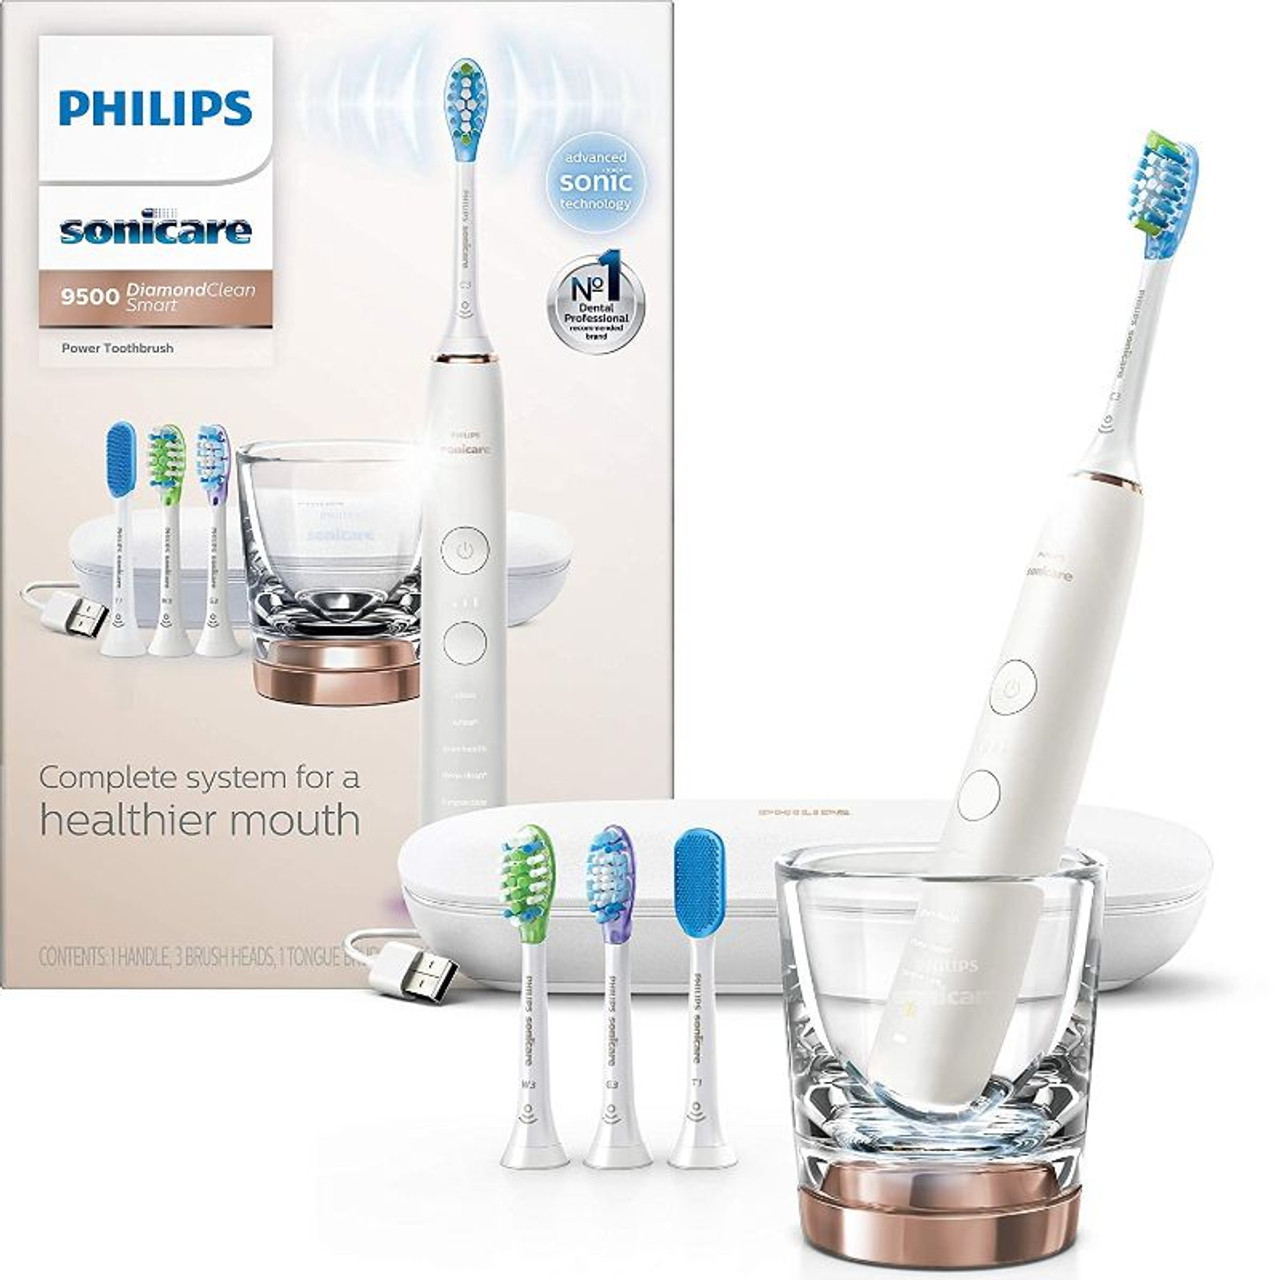 Philips Sonicare Diamond Clean Smart 9500 Rechargeable Electric Toothbrush